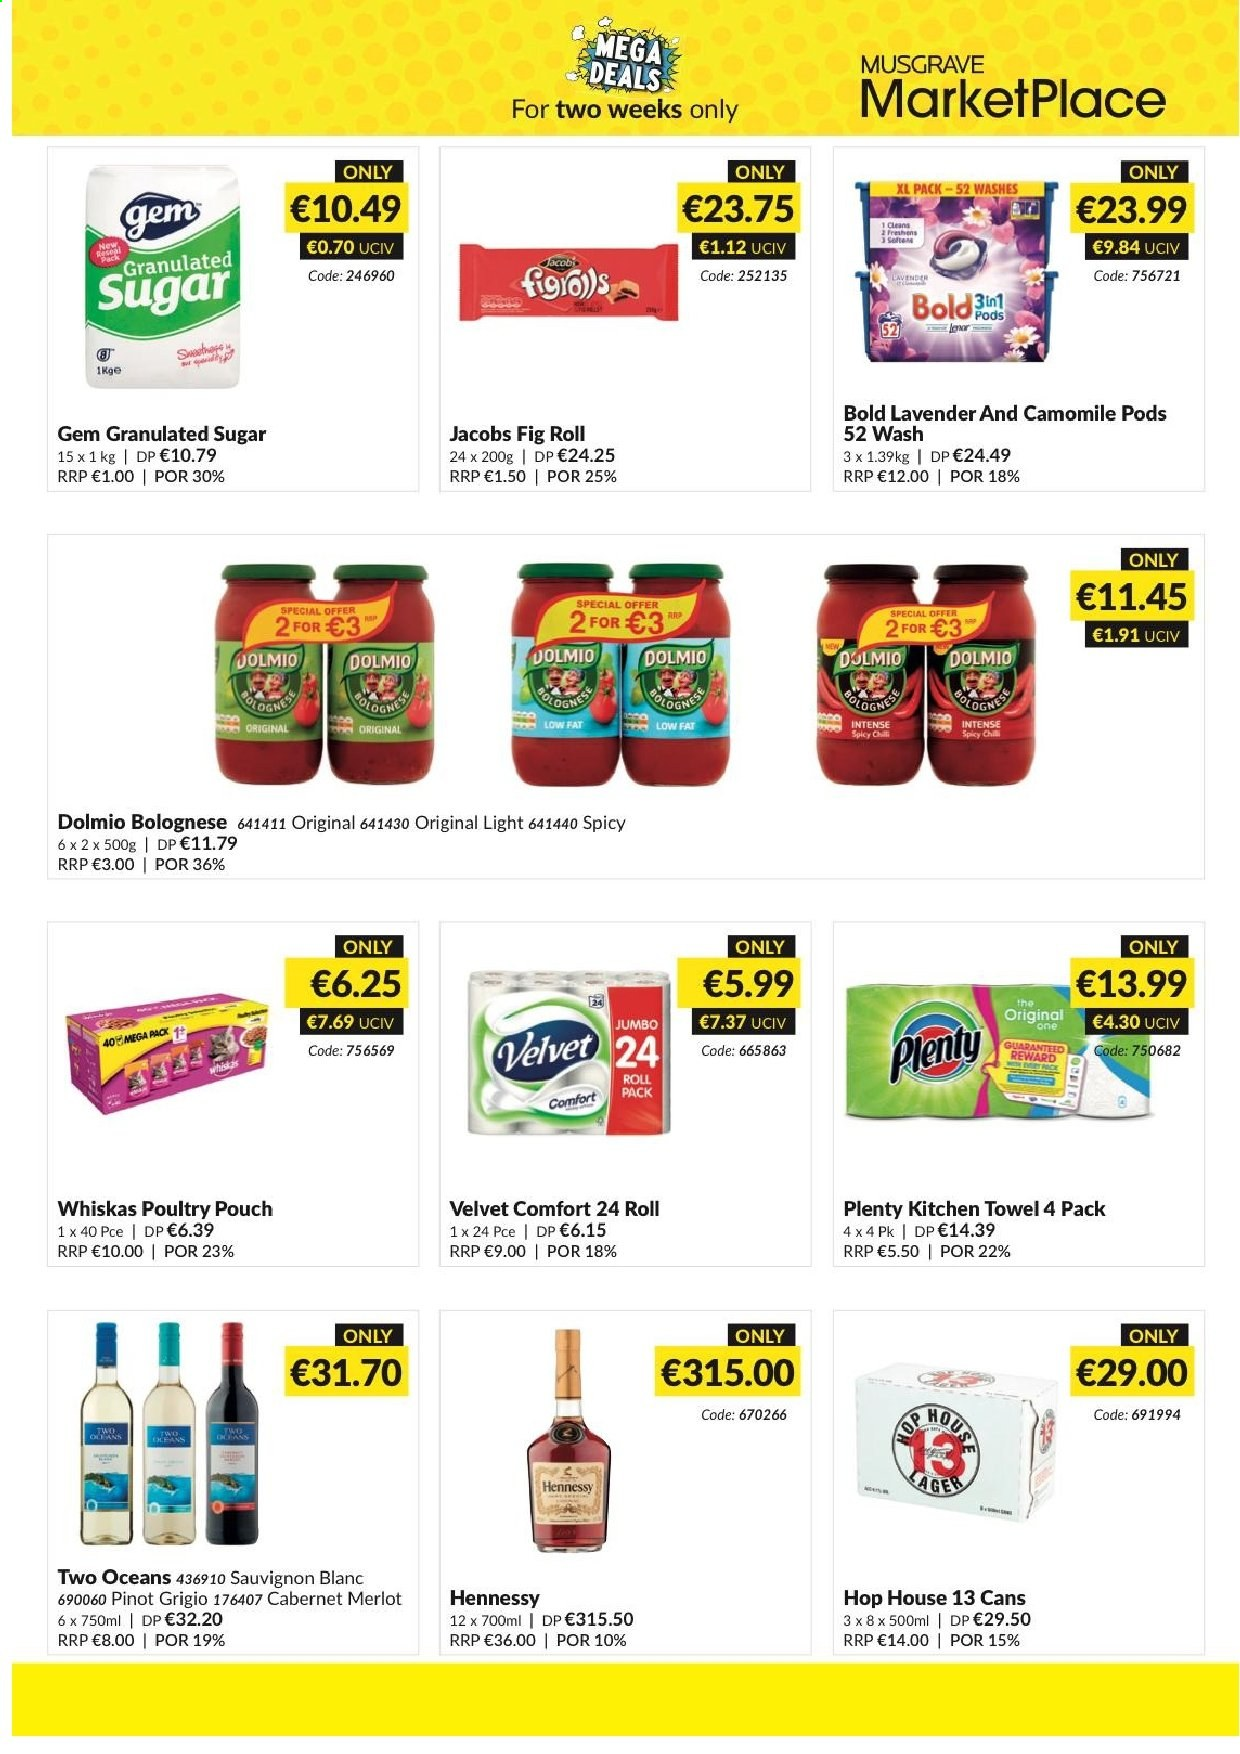 MUSGRAVE Market Place offer  - 26.5.2019 - 8.6.2019 - Sales products - granulated sugar, sugar, Jacobs, merlot, sauvignon, Hennessy, kitchen towel. Page 2.